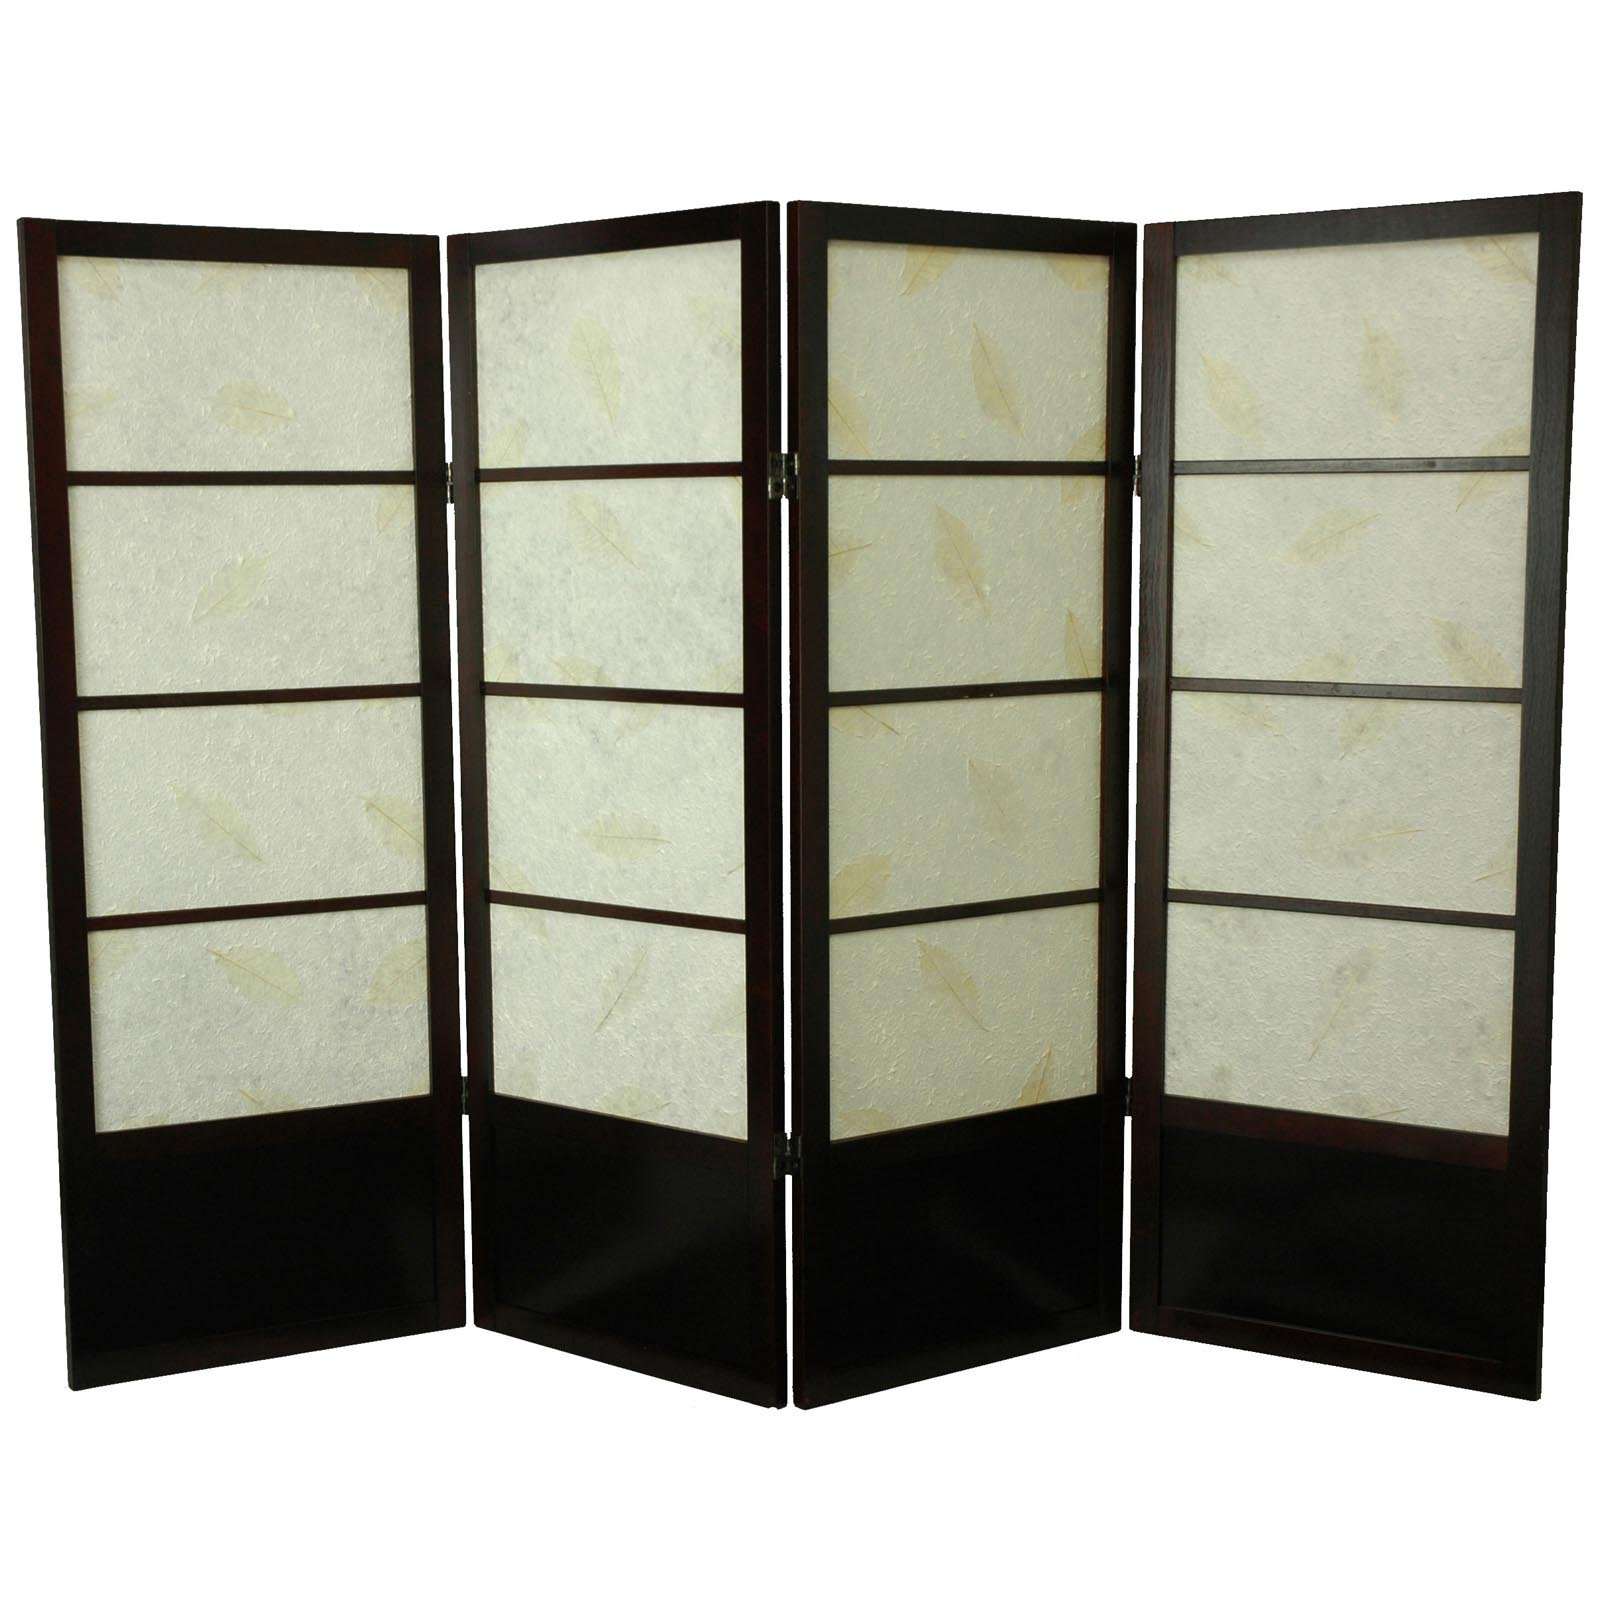 Oriental Furniture Low Botanic Shoji Screen Room Divider 48 Inch 6  Panels Walnut